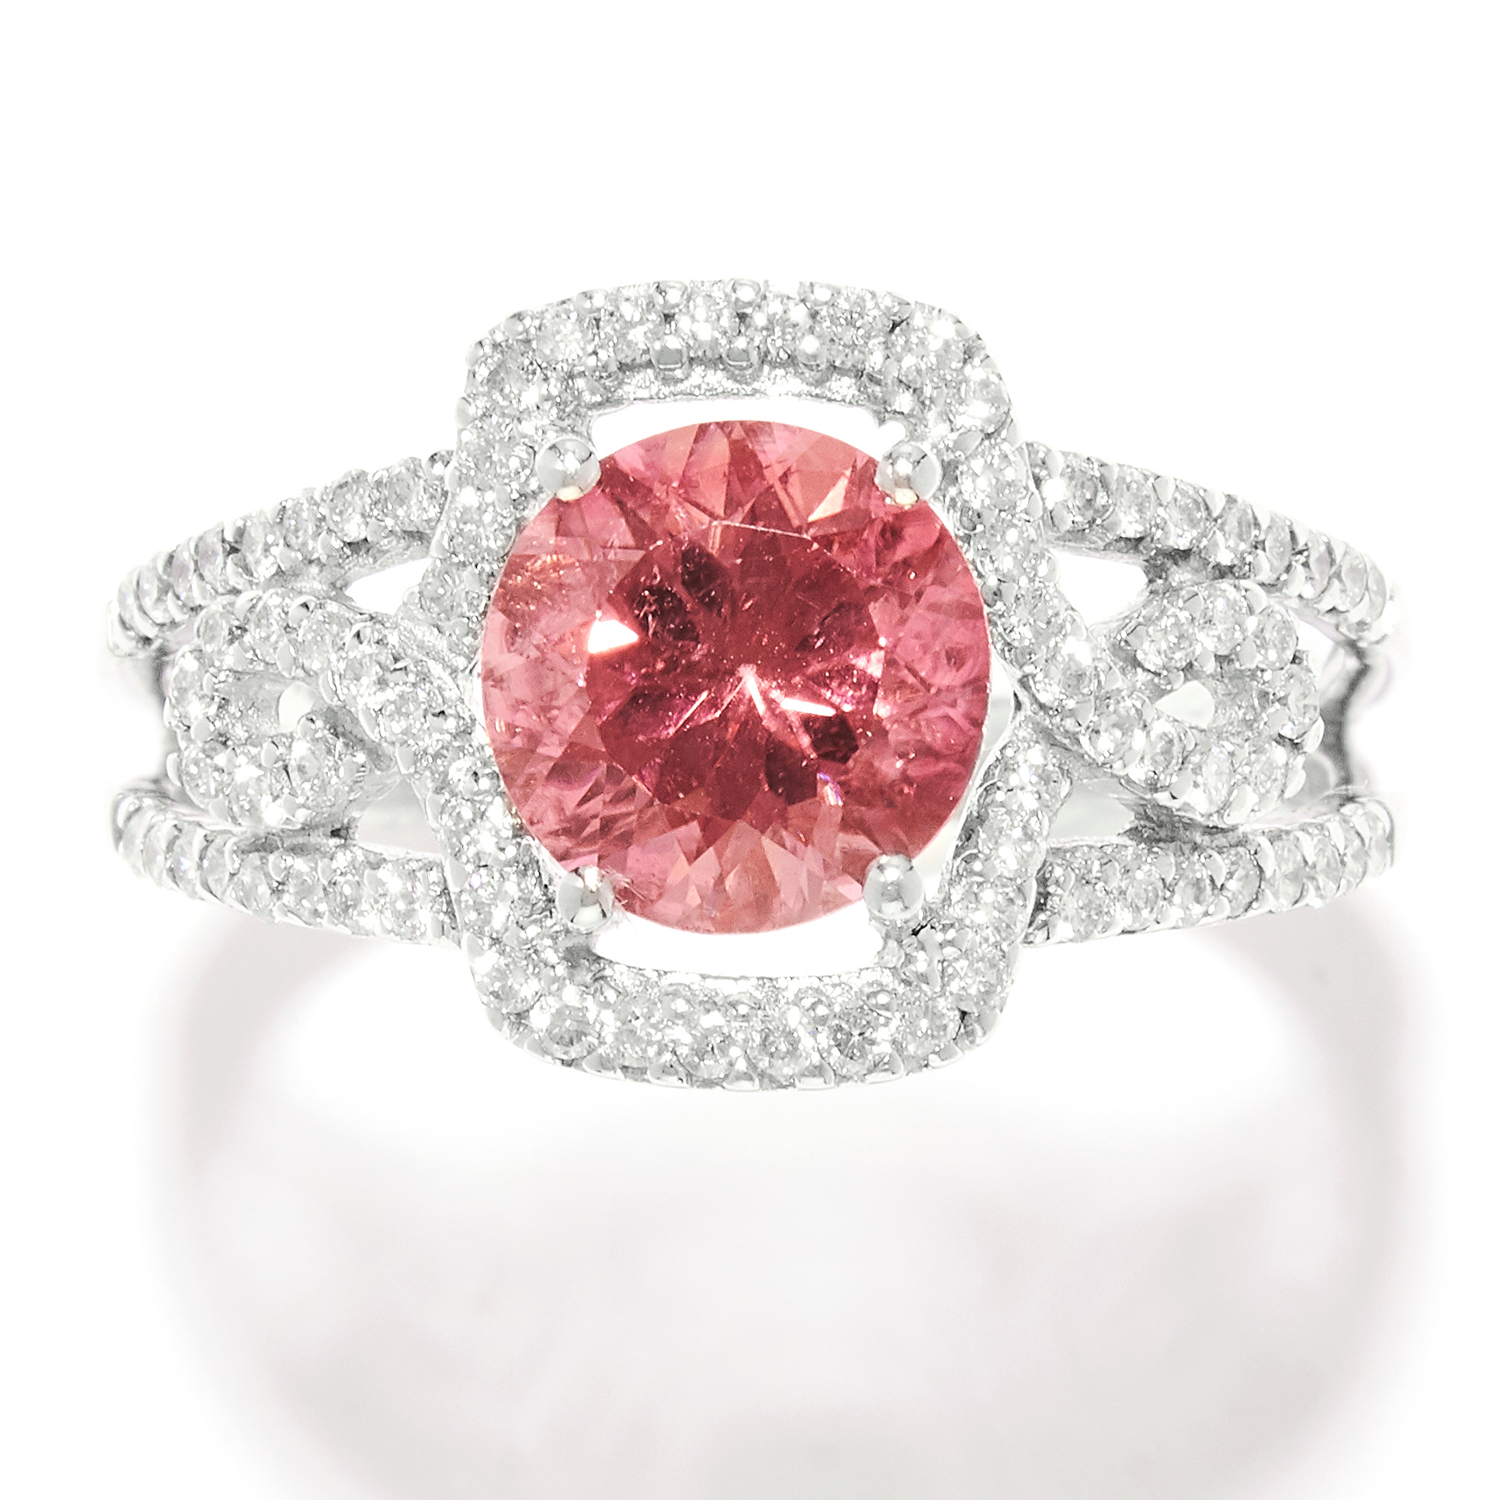 TOURMALINE AND DIAMOND DRESS RING in white gold, set with a round cut pink tourmaline and round